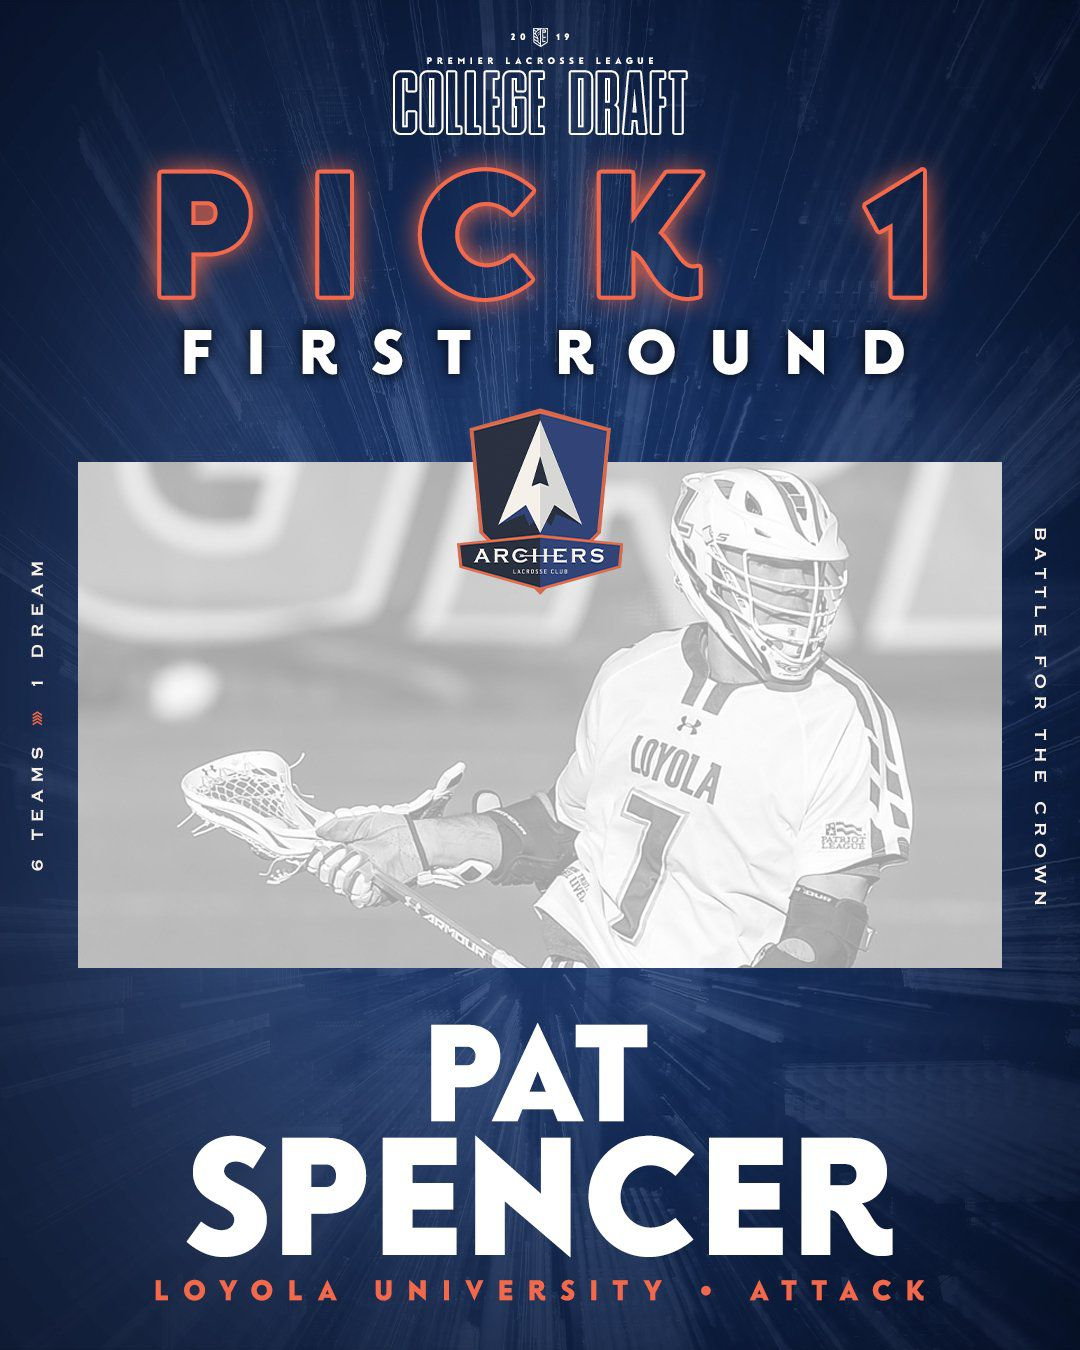 Pat Spencer's draft selection page